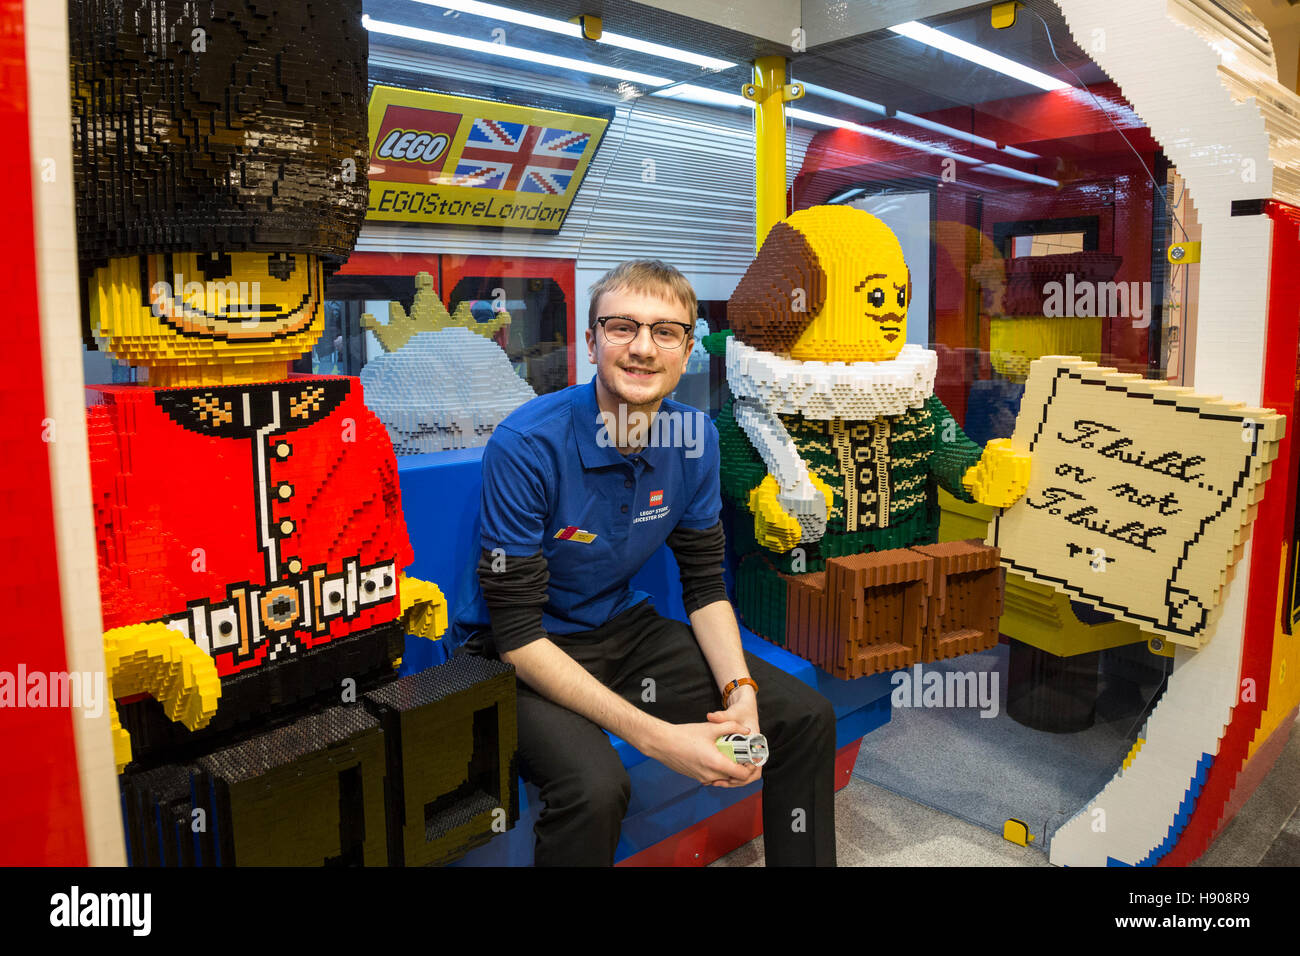 London, UK. 17 November 2016. A shop assistant sits in a tube train made of LEGO bricks. London's LEGO Store - Stock Image